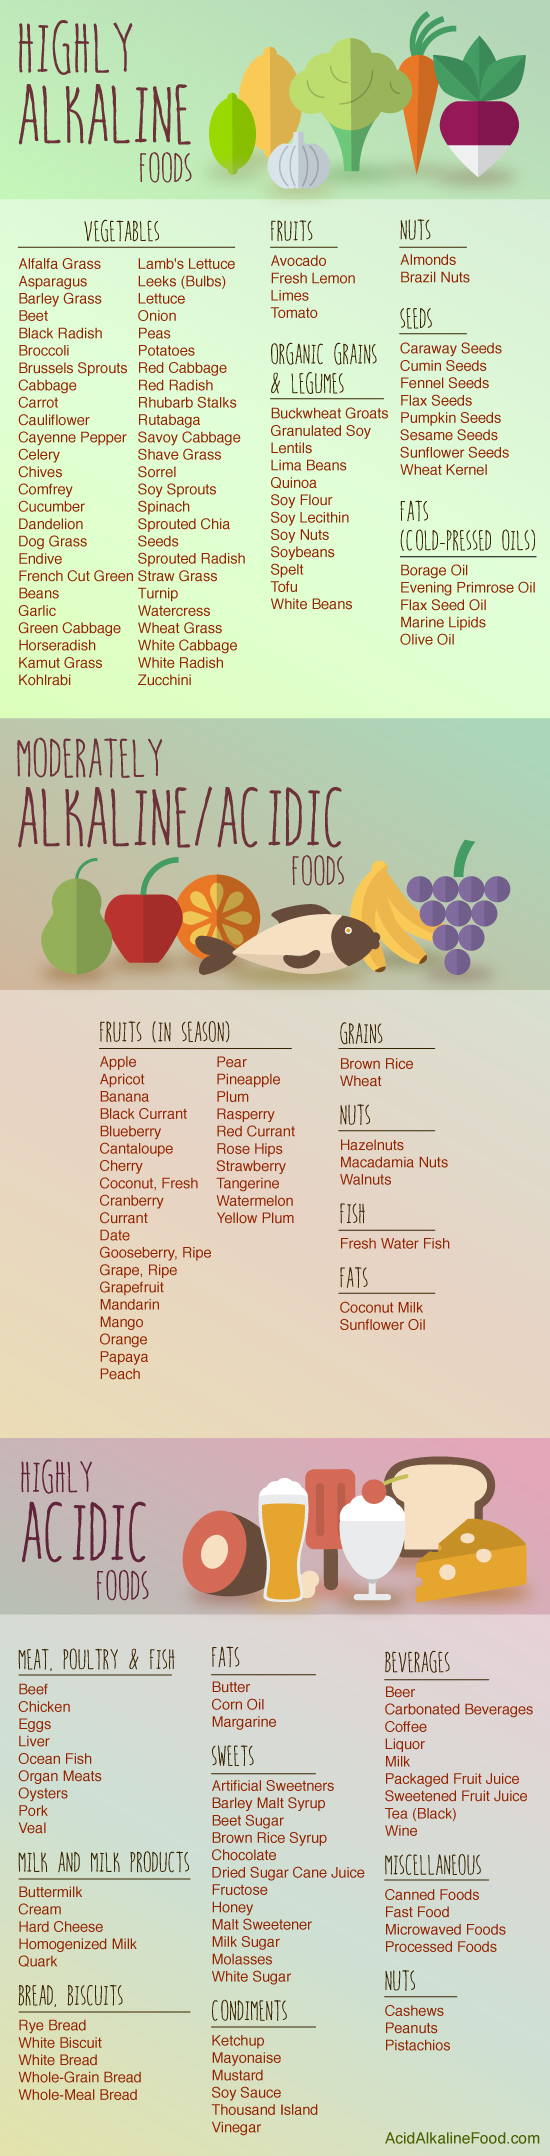 92 alkaline foods that fight cancer inflammation diabetes and httpacidalkalinefoodwp contentuploads201504alkaline food chart webg forumfinder Gallery